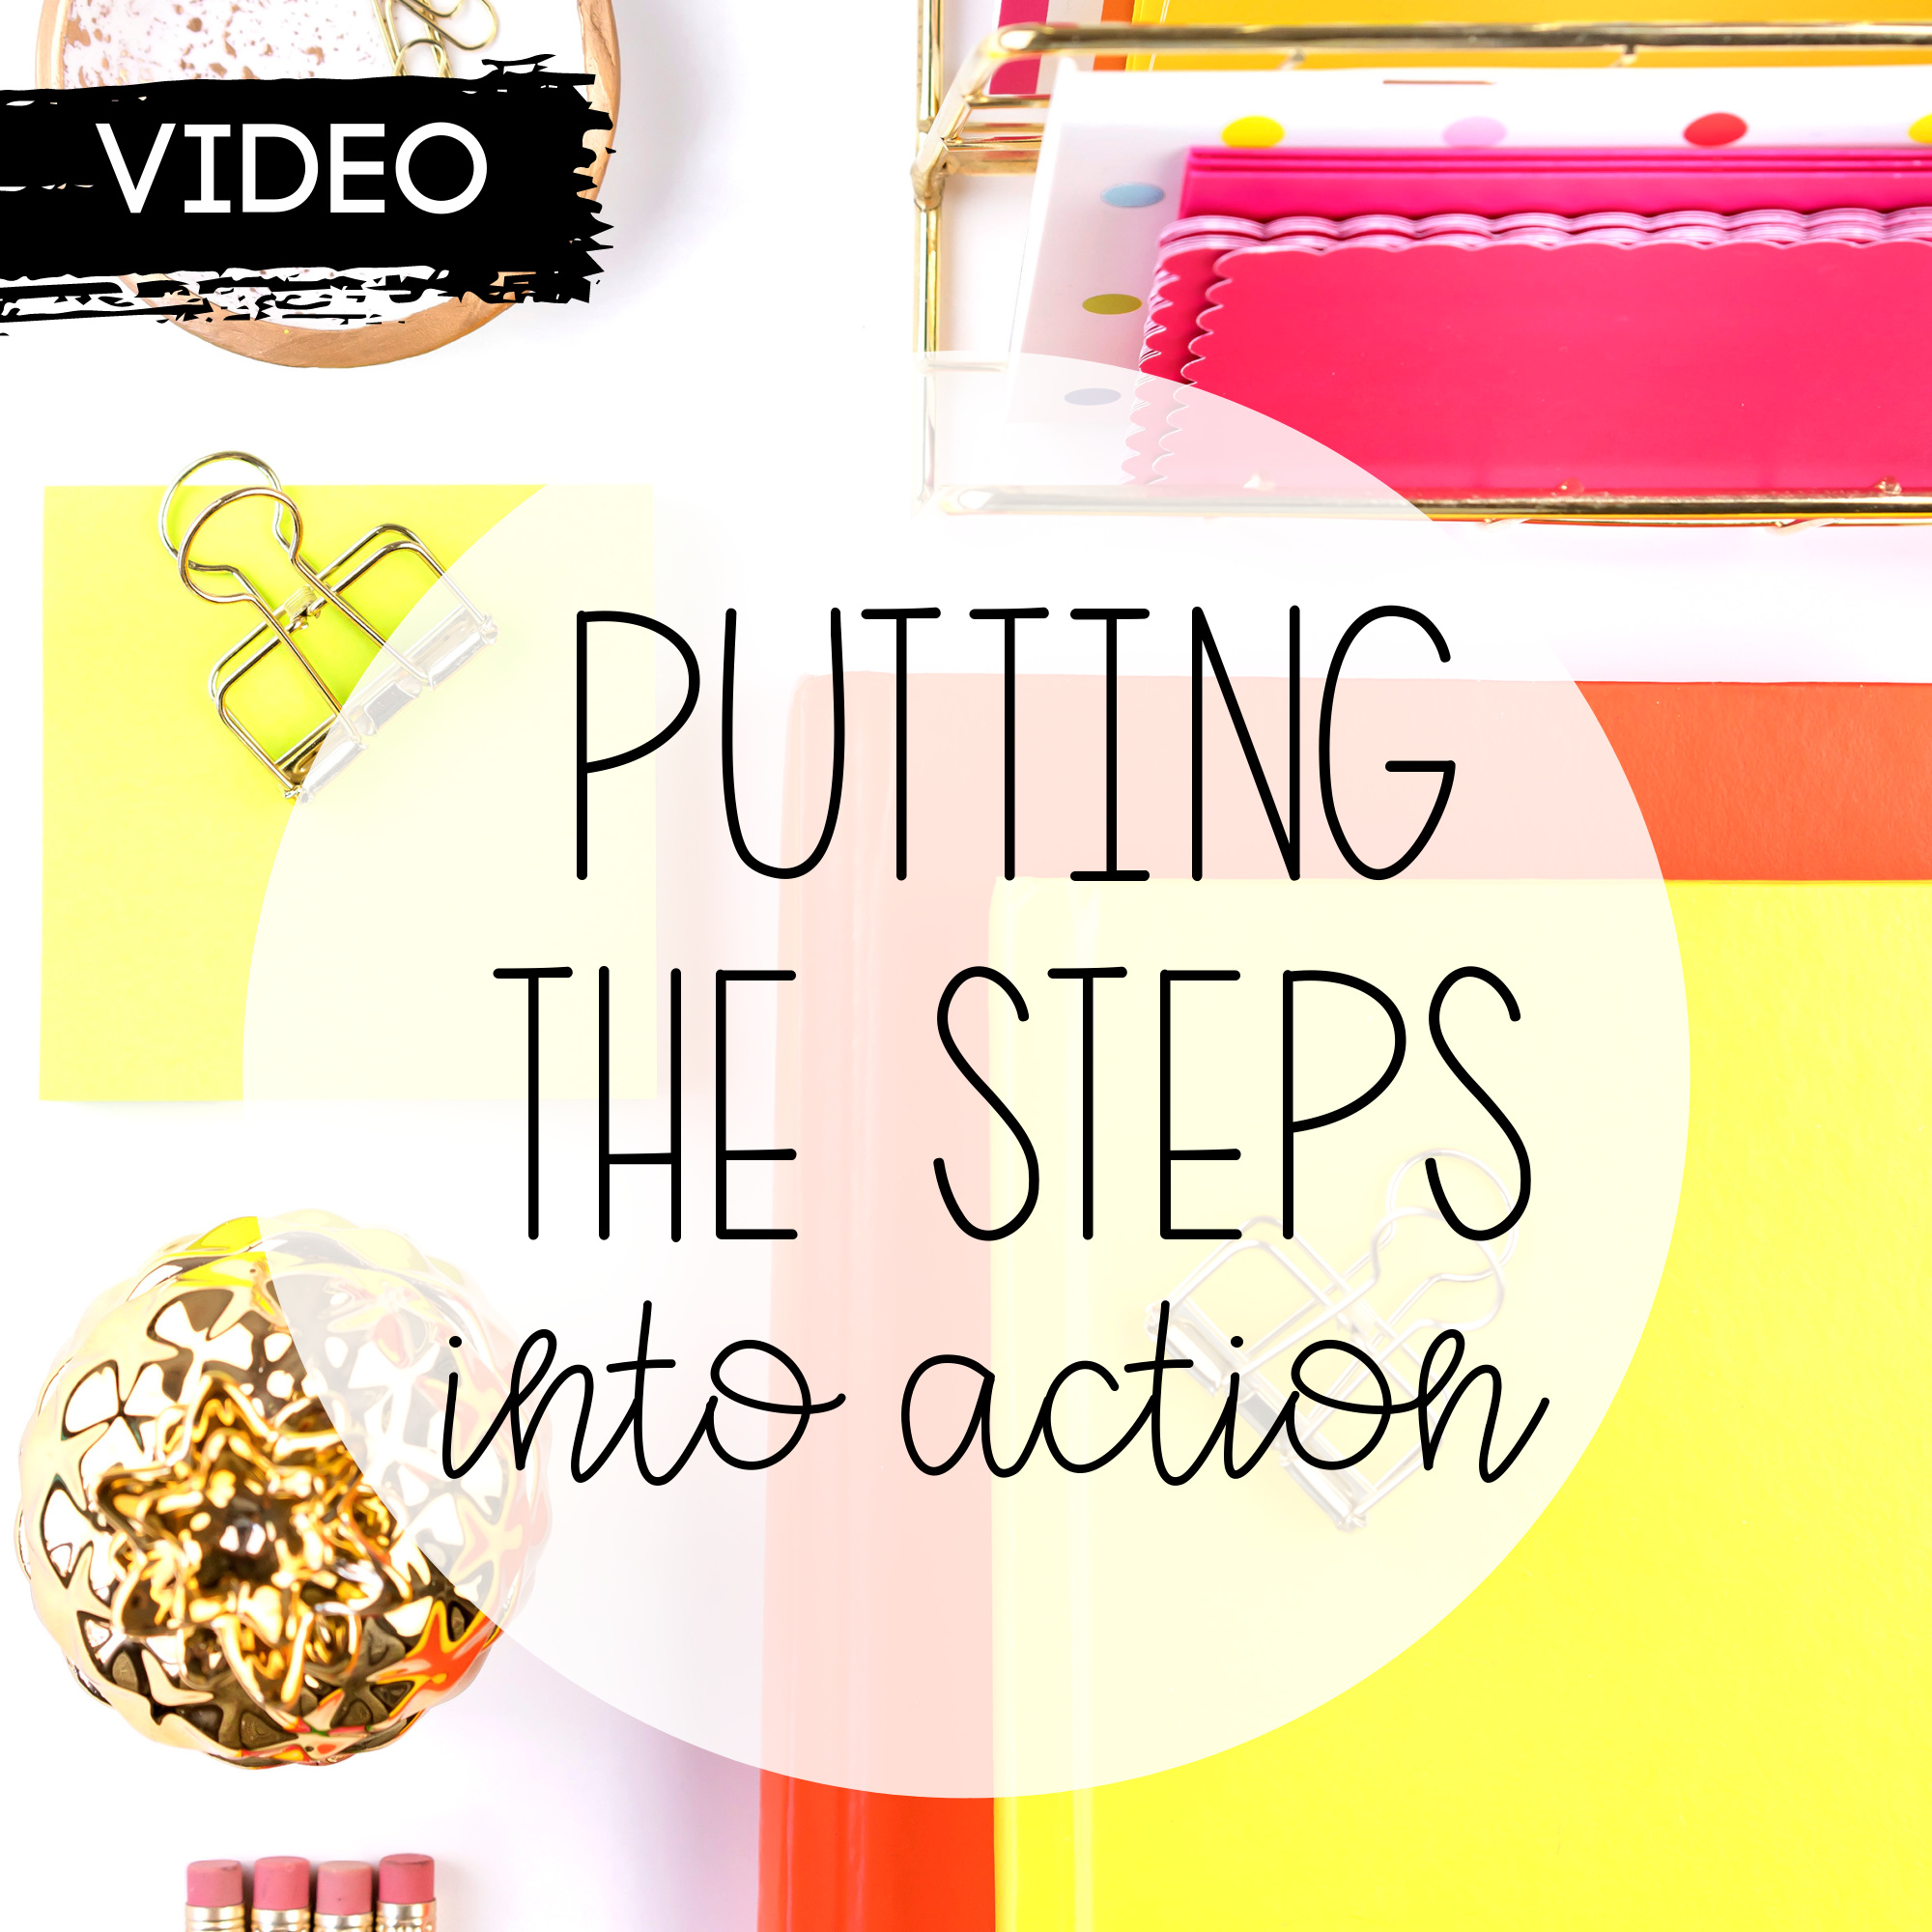 Putting the Steps Into Action